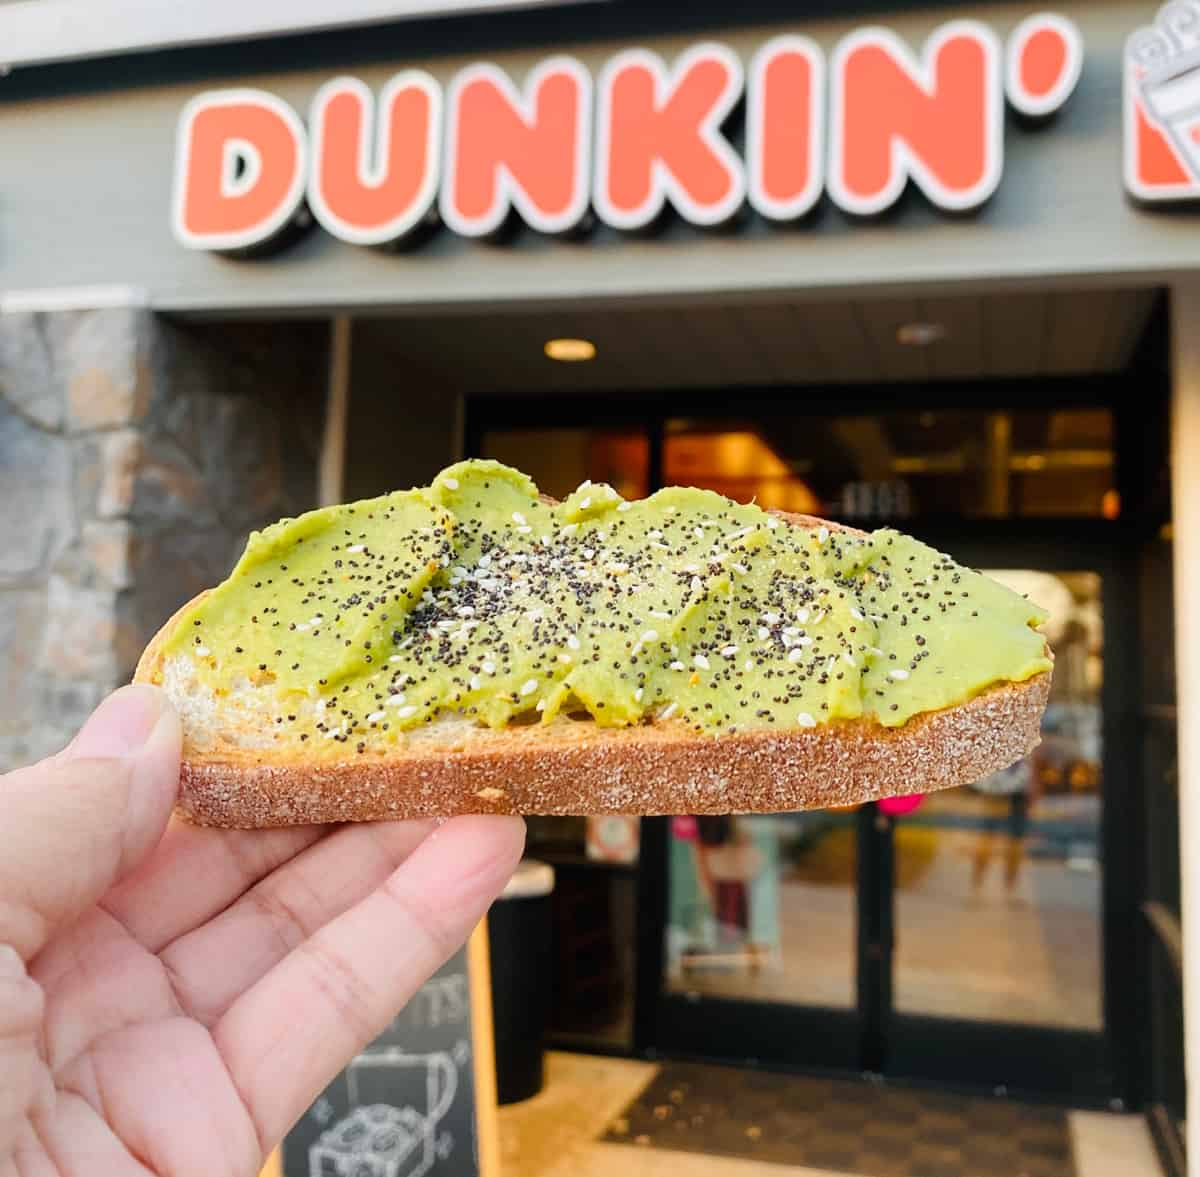 We Tried Dunkin' Donuts Avocado Toast – Here's What It Tastes Like